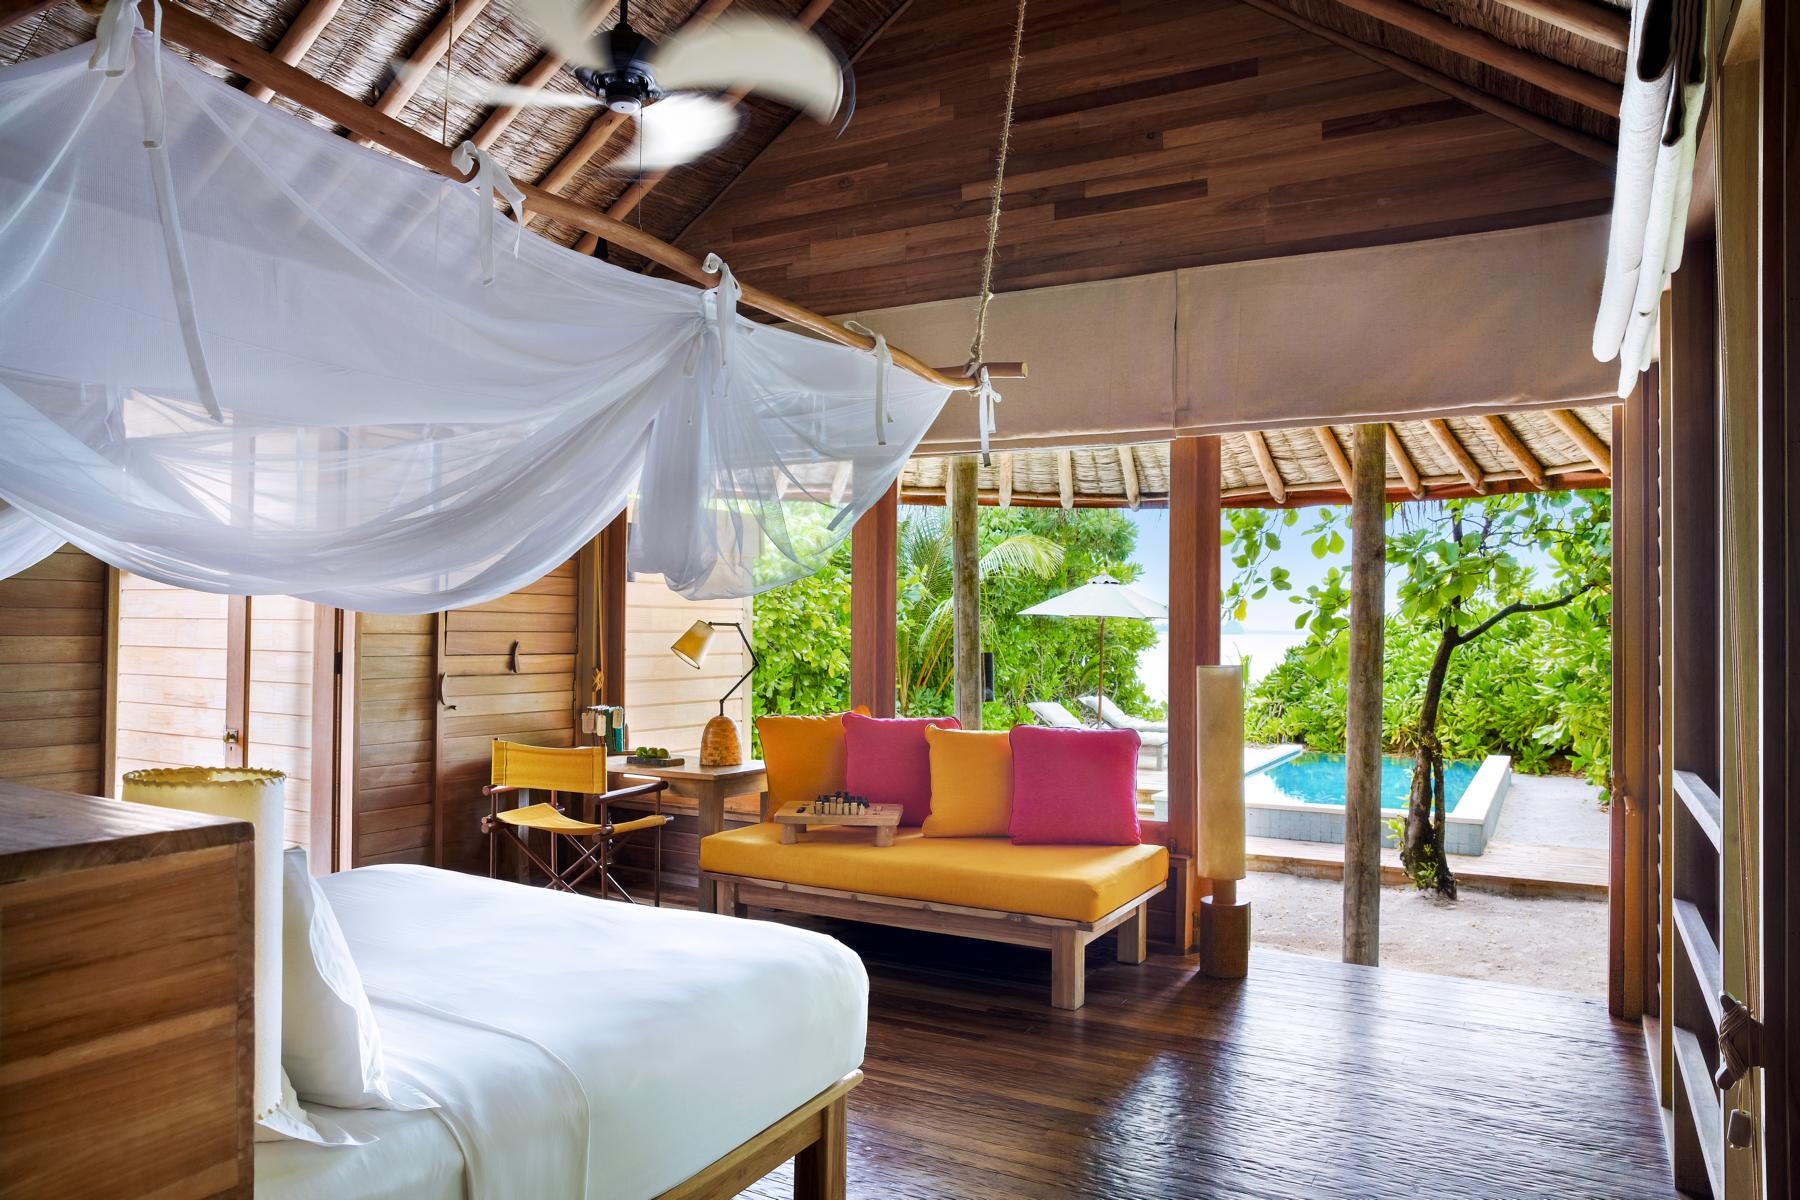 onefinemoment_Six Senses Laamu